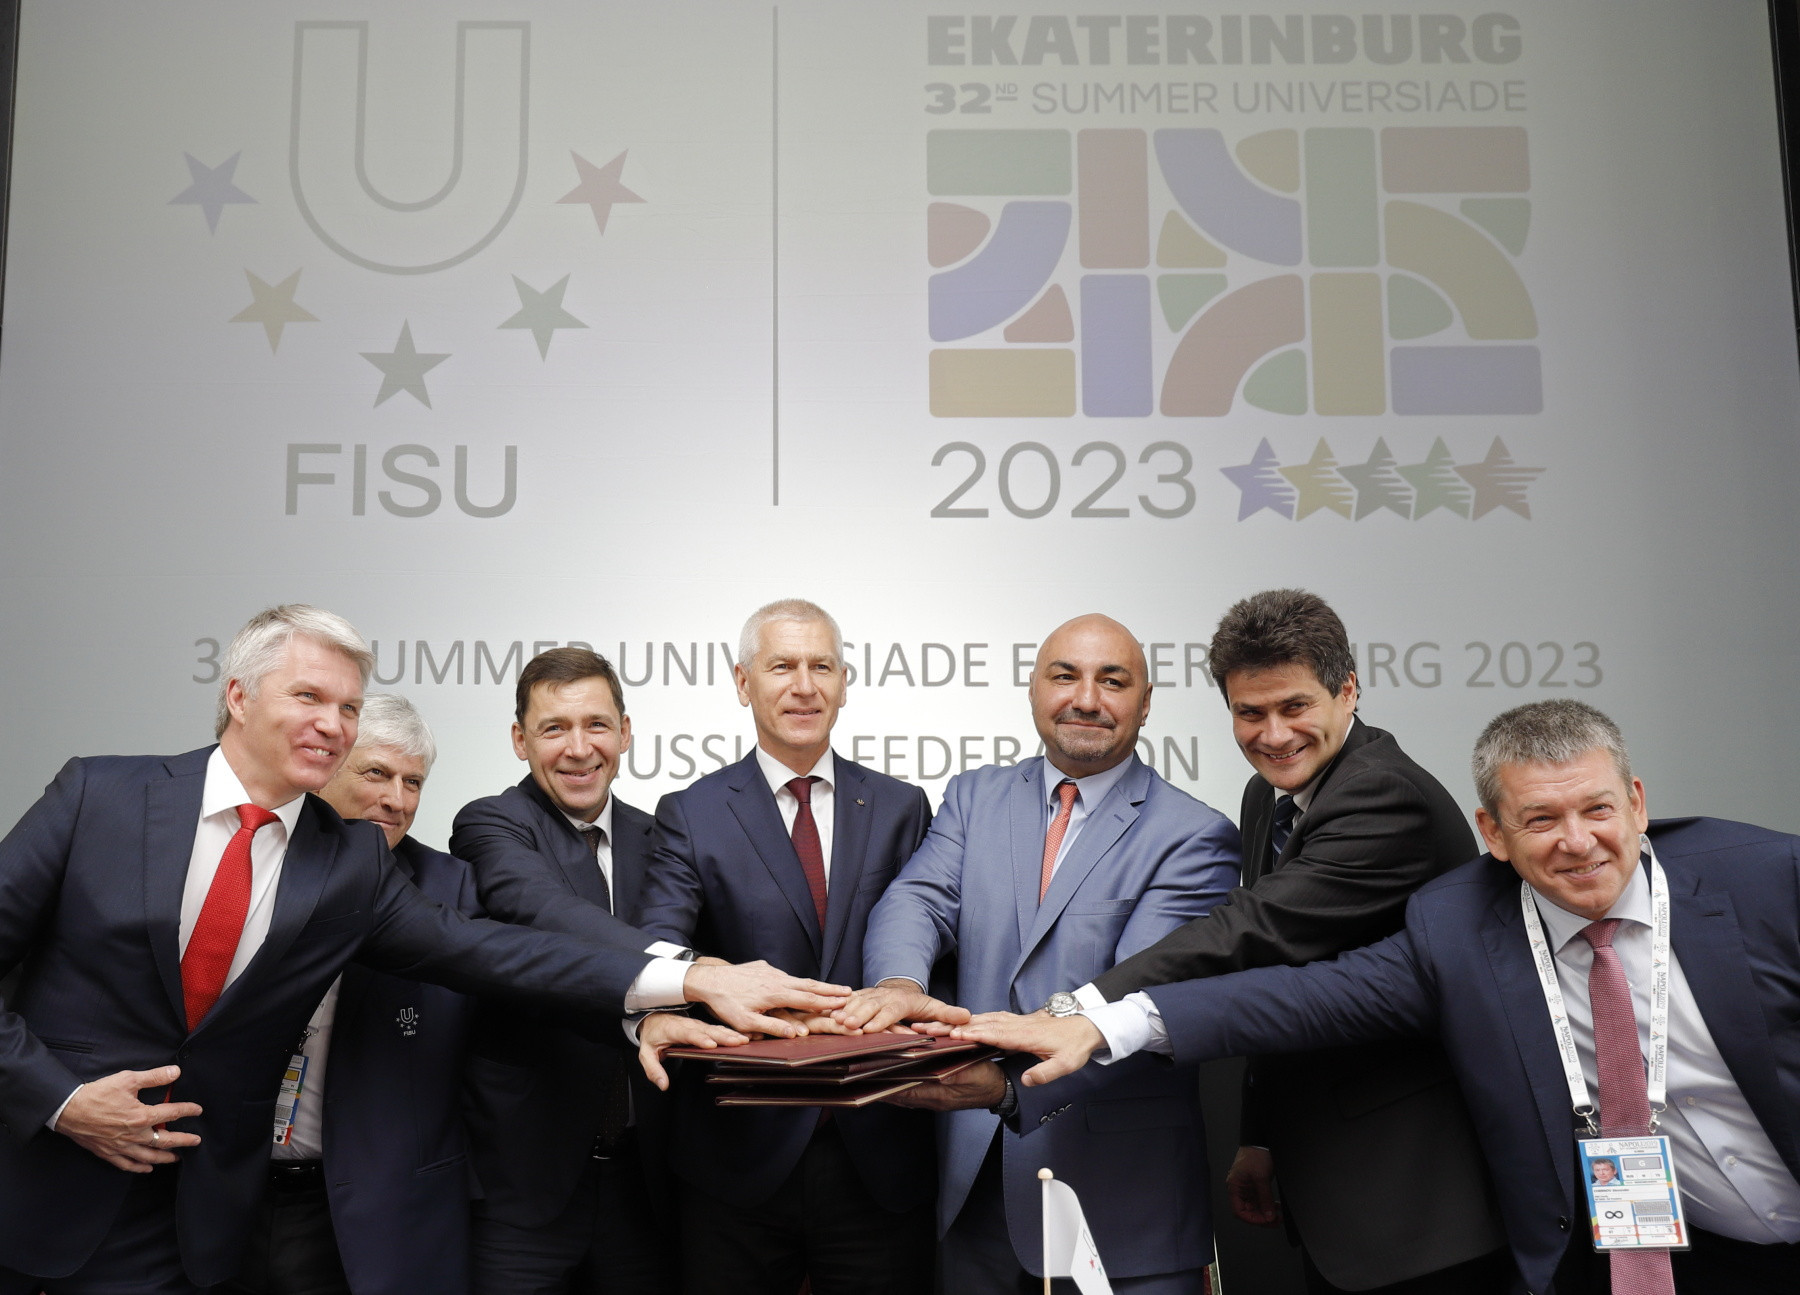 Yekaterinburg was awarded the 2023 Summer World University Games last year ©FISU